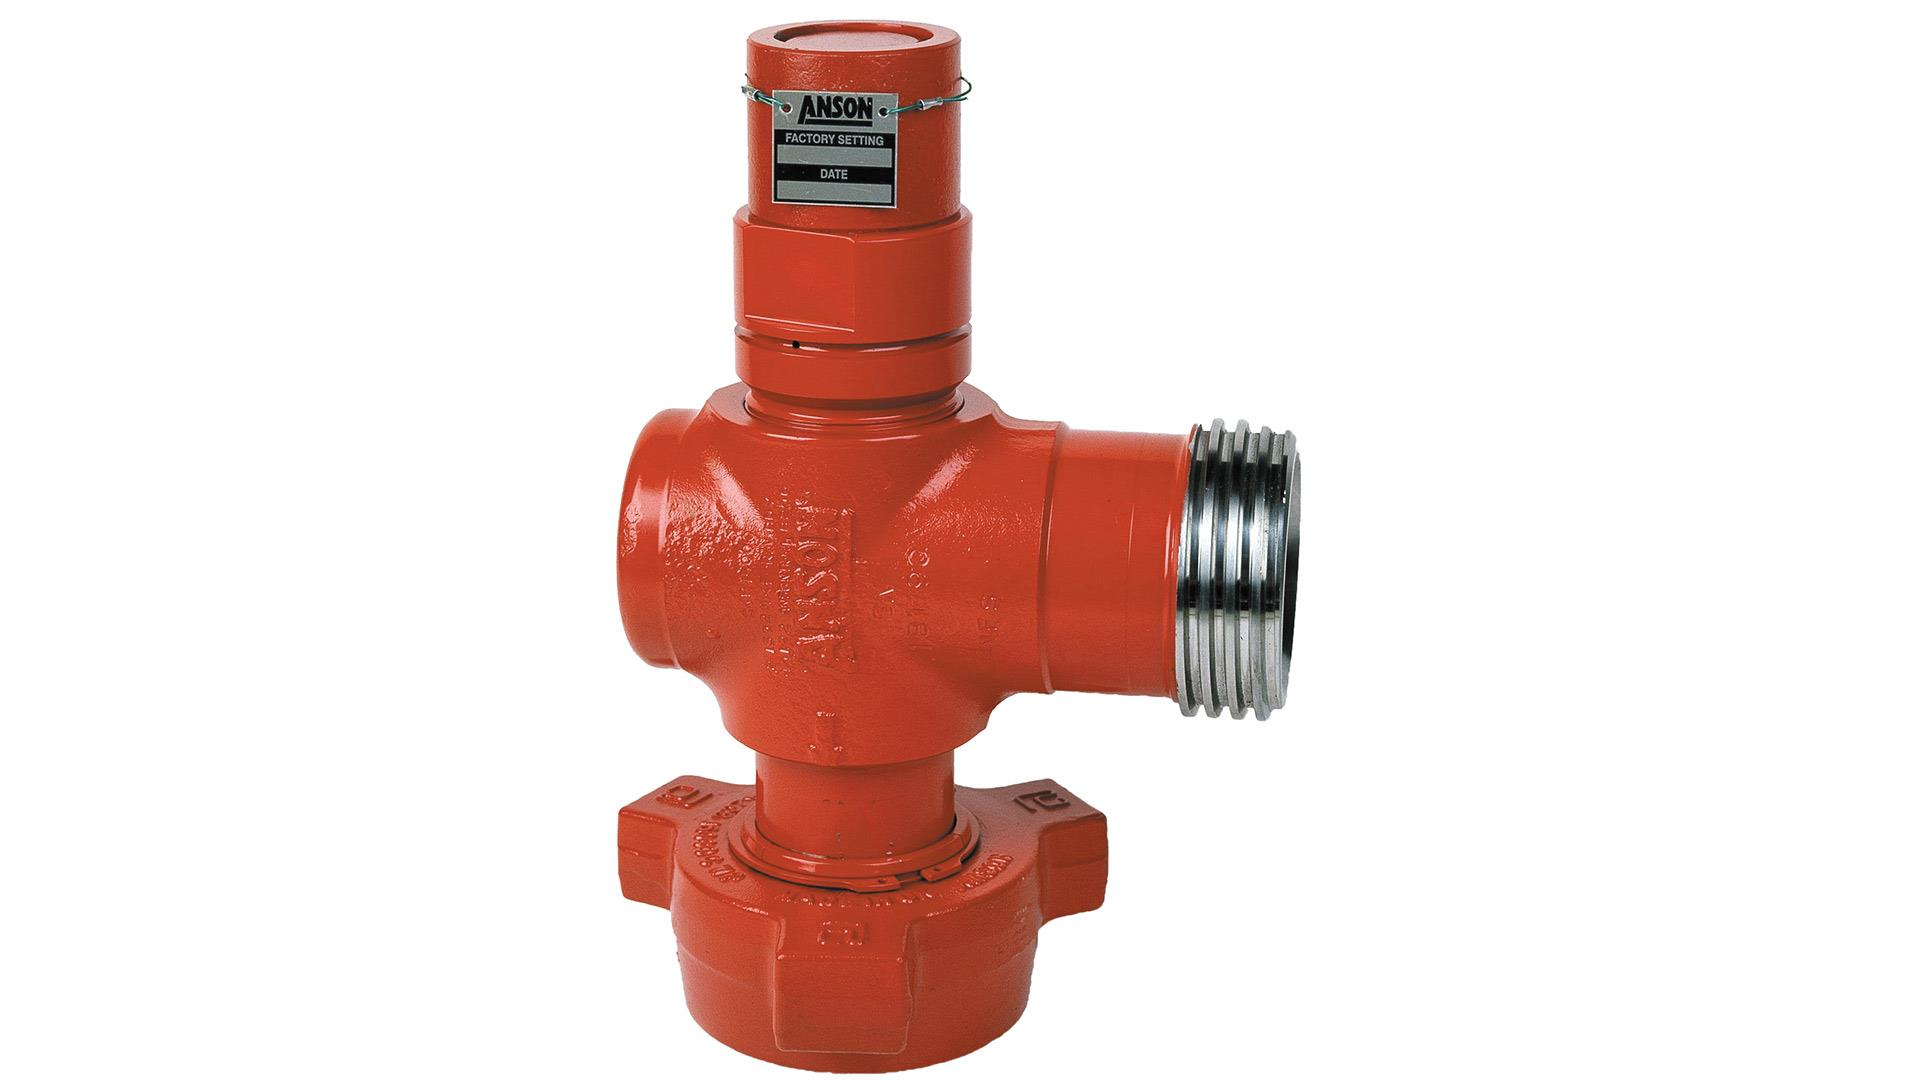 Image of a red pressure relief valve